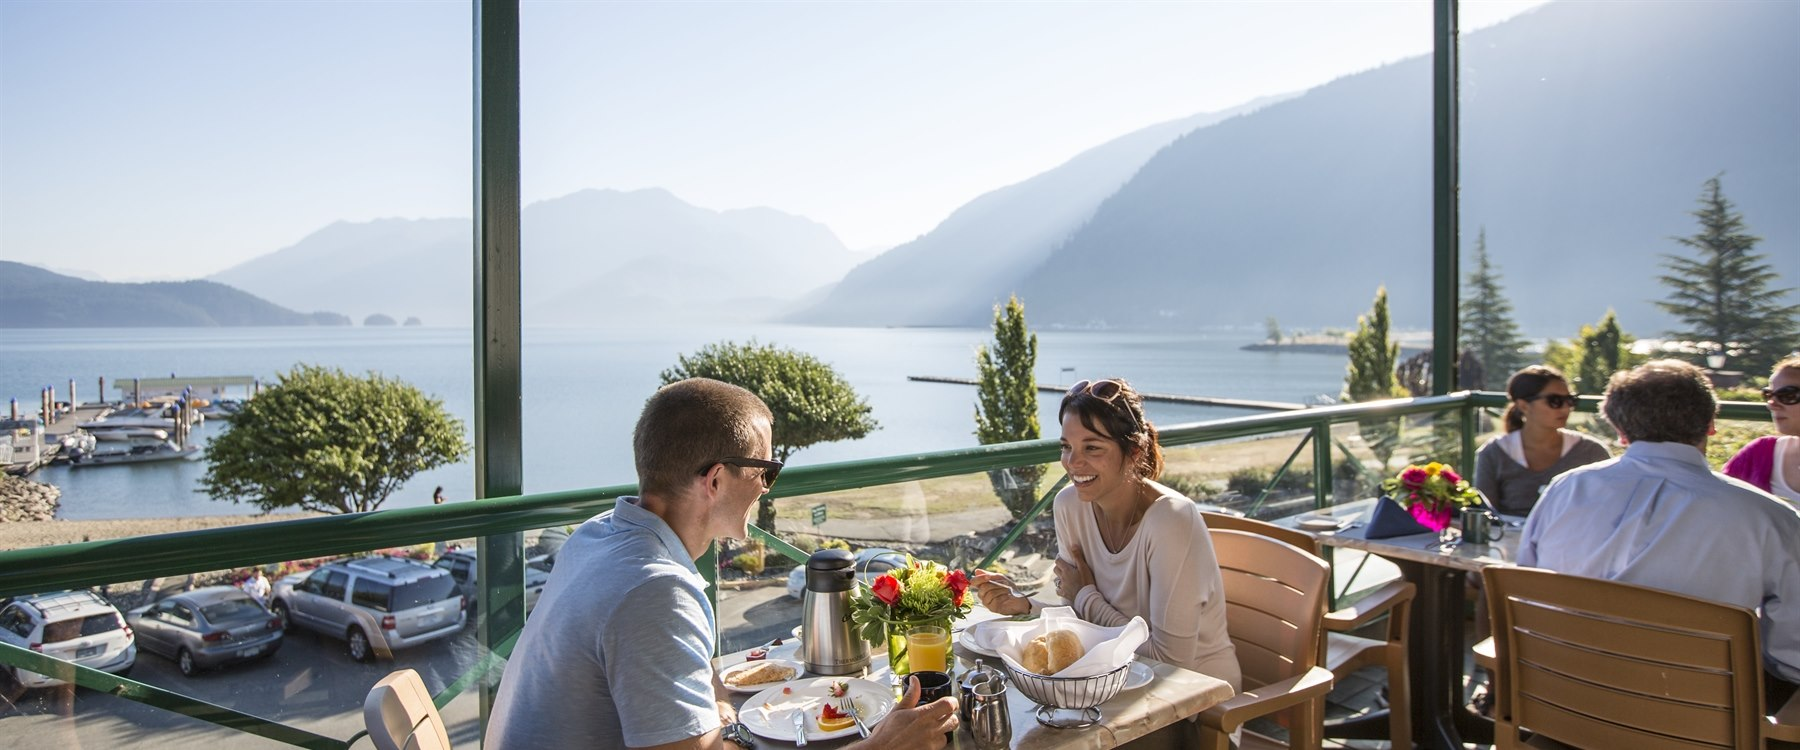 Dining overlooking the lake at Harrison Hot Springs Resort